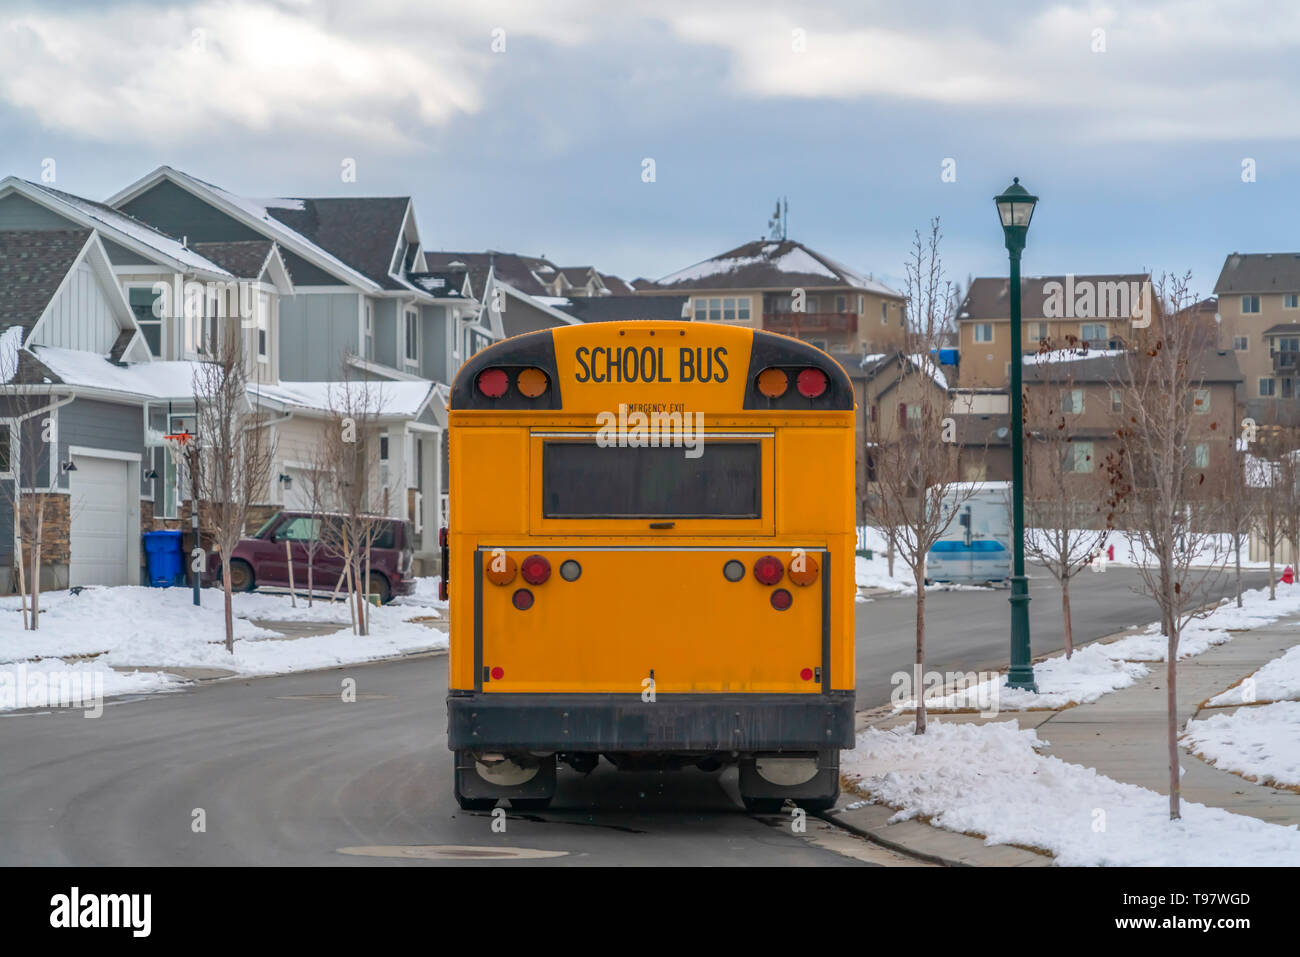 Rear view of a yellow school bus with a window and several signal lights - Stock Image